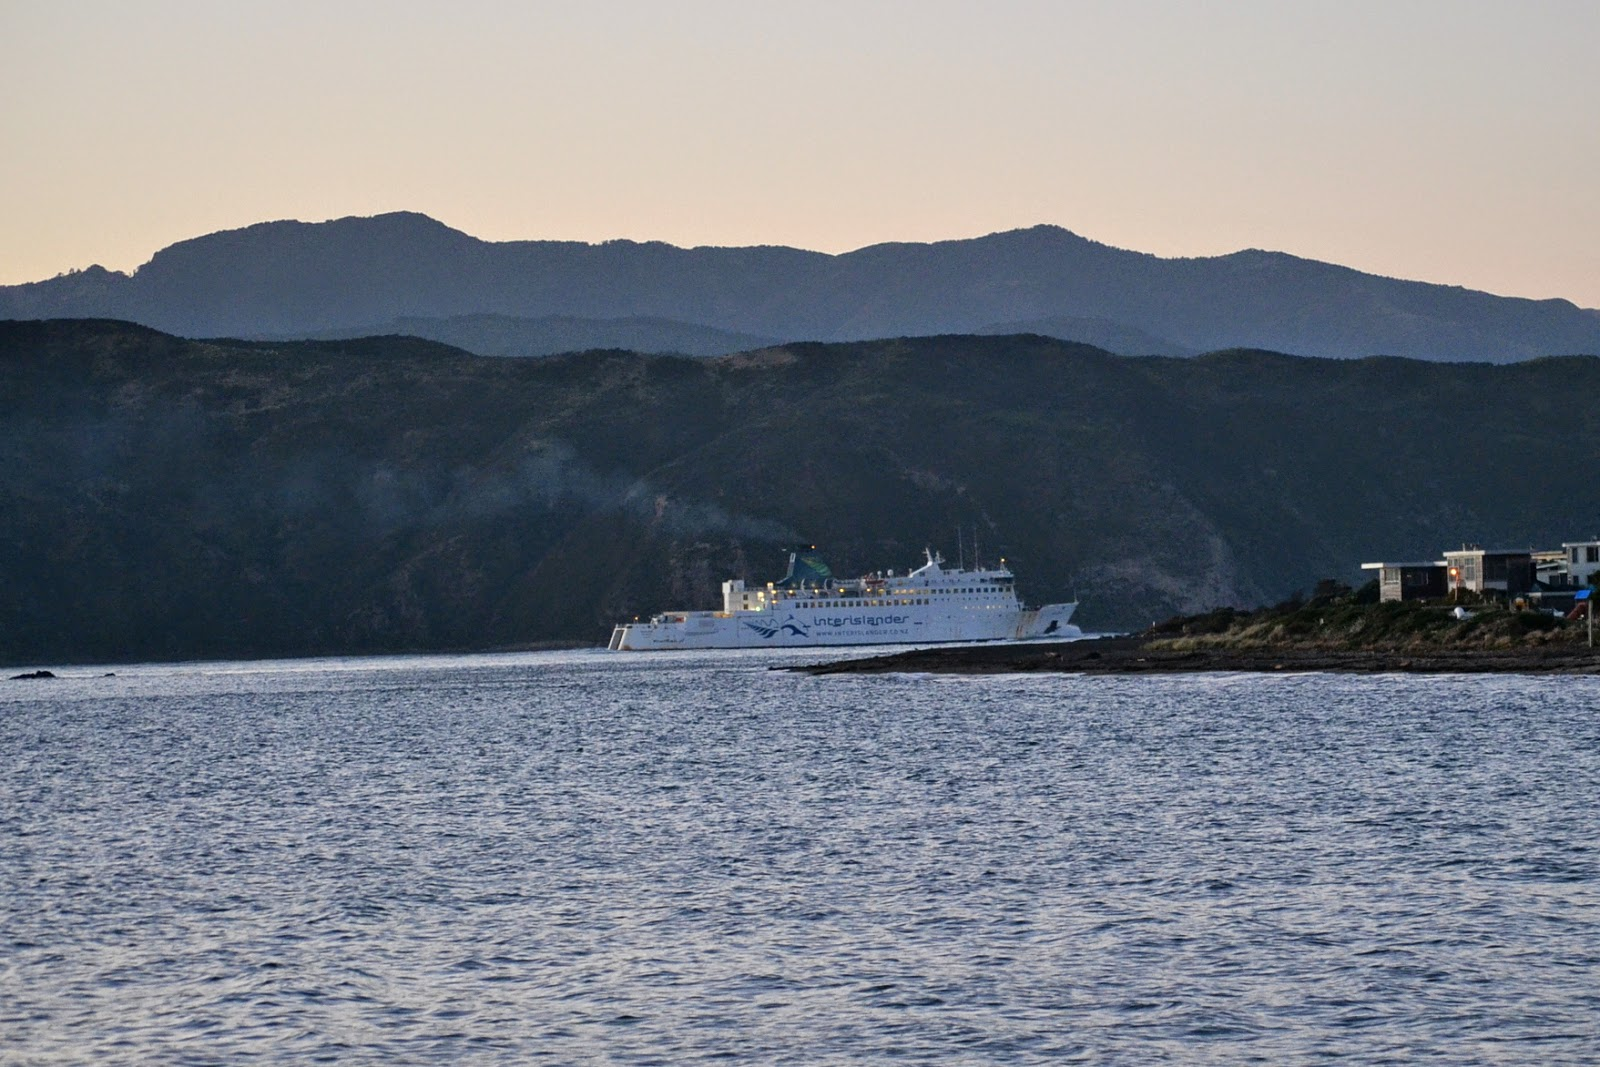 Interislander Ferry leaving Seatoun